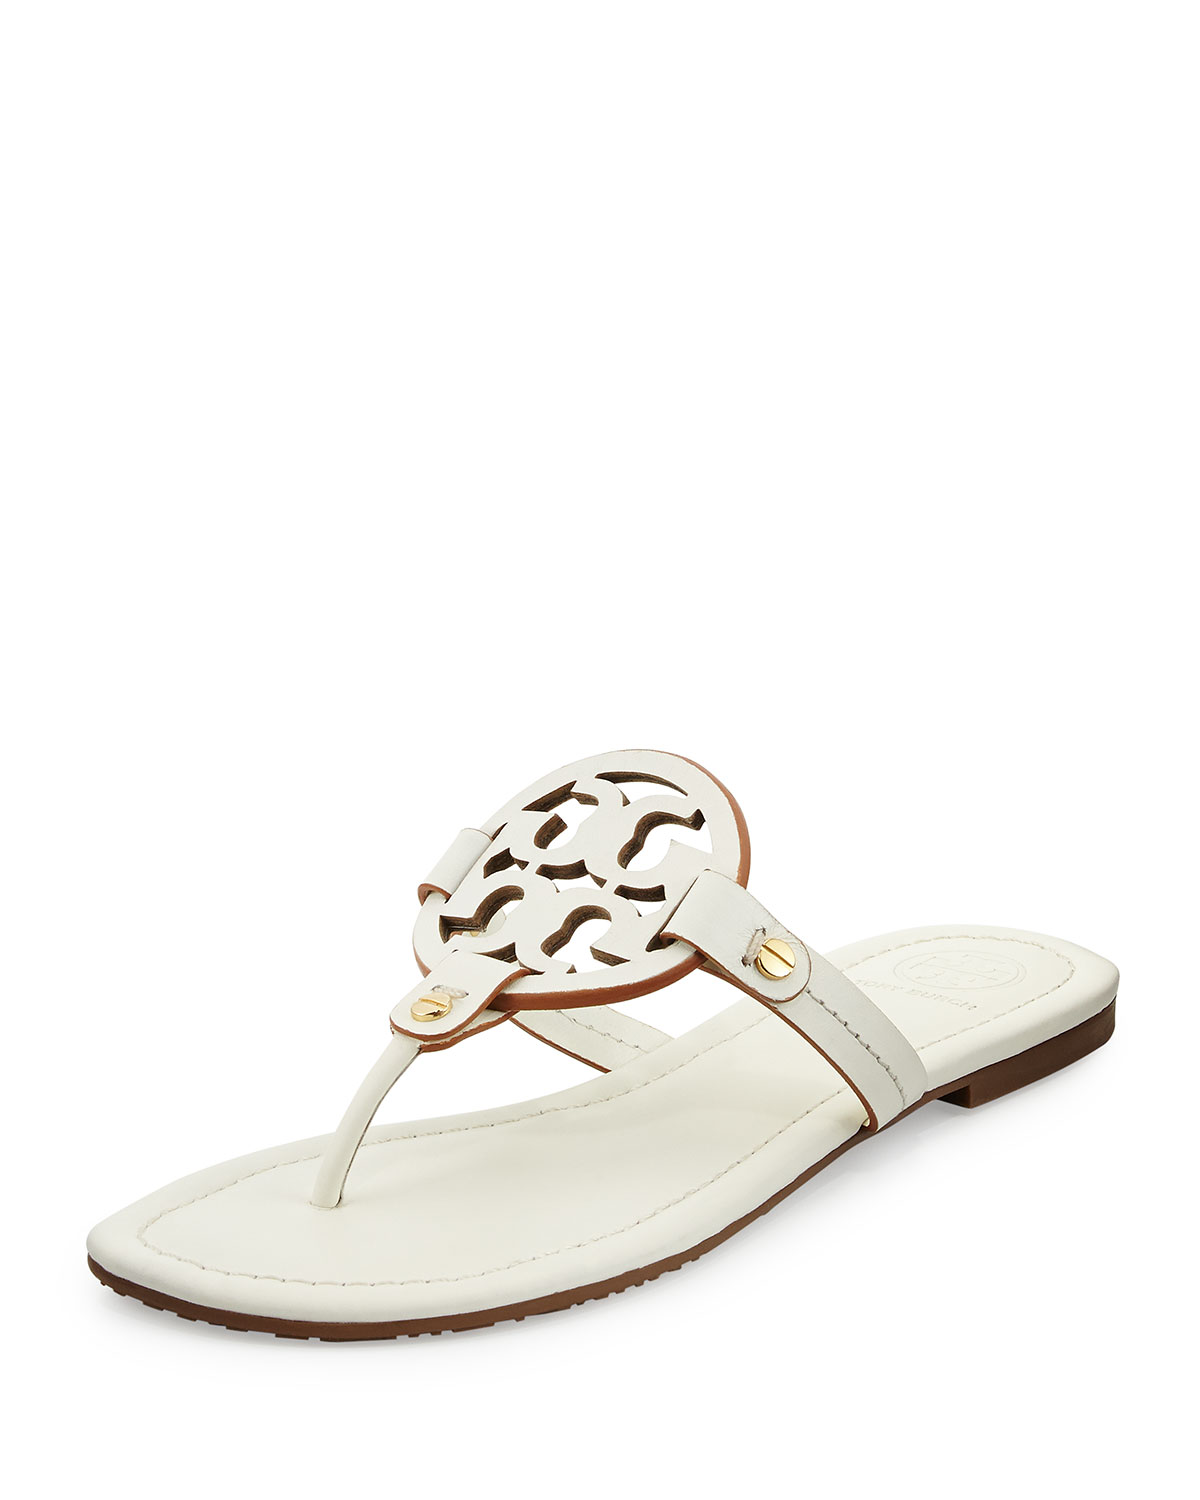 cae69230fec7ee Tory Burch Miller Leather Logo Thong Sandal